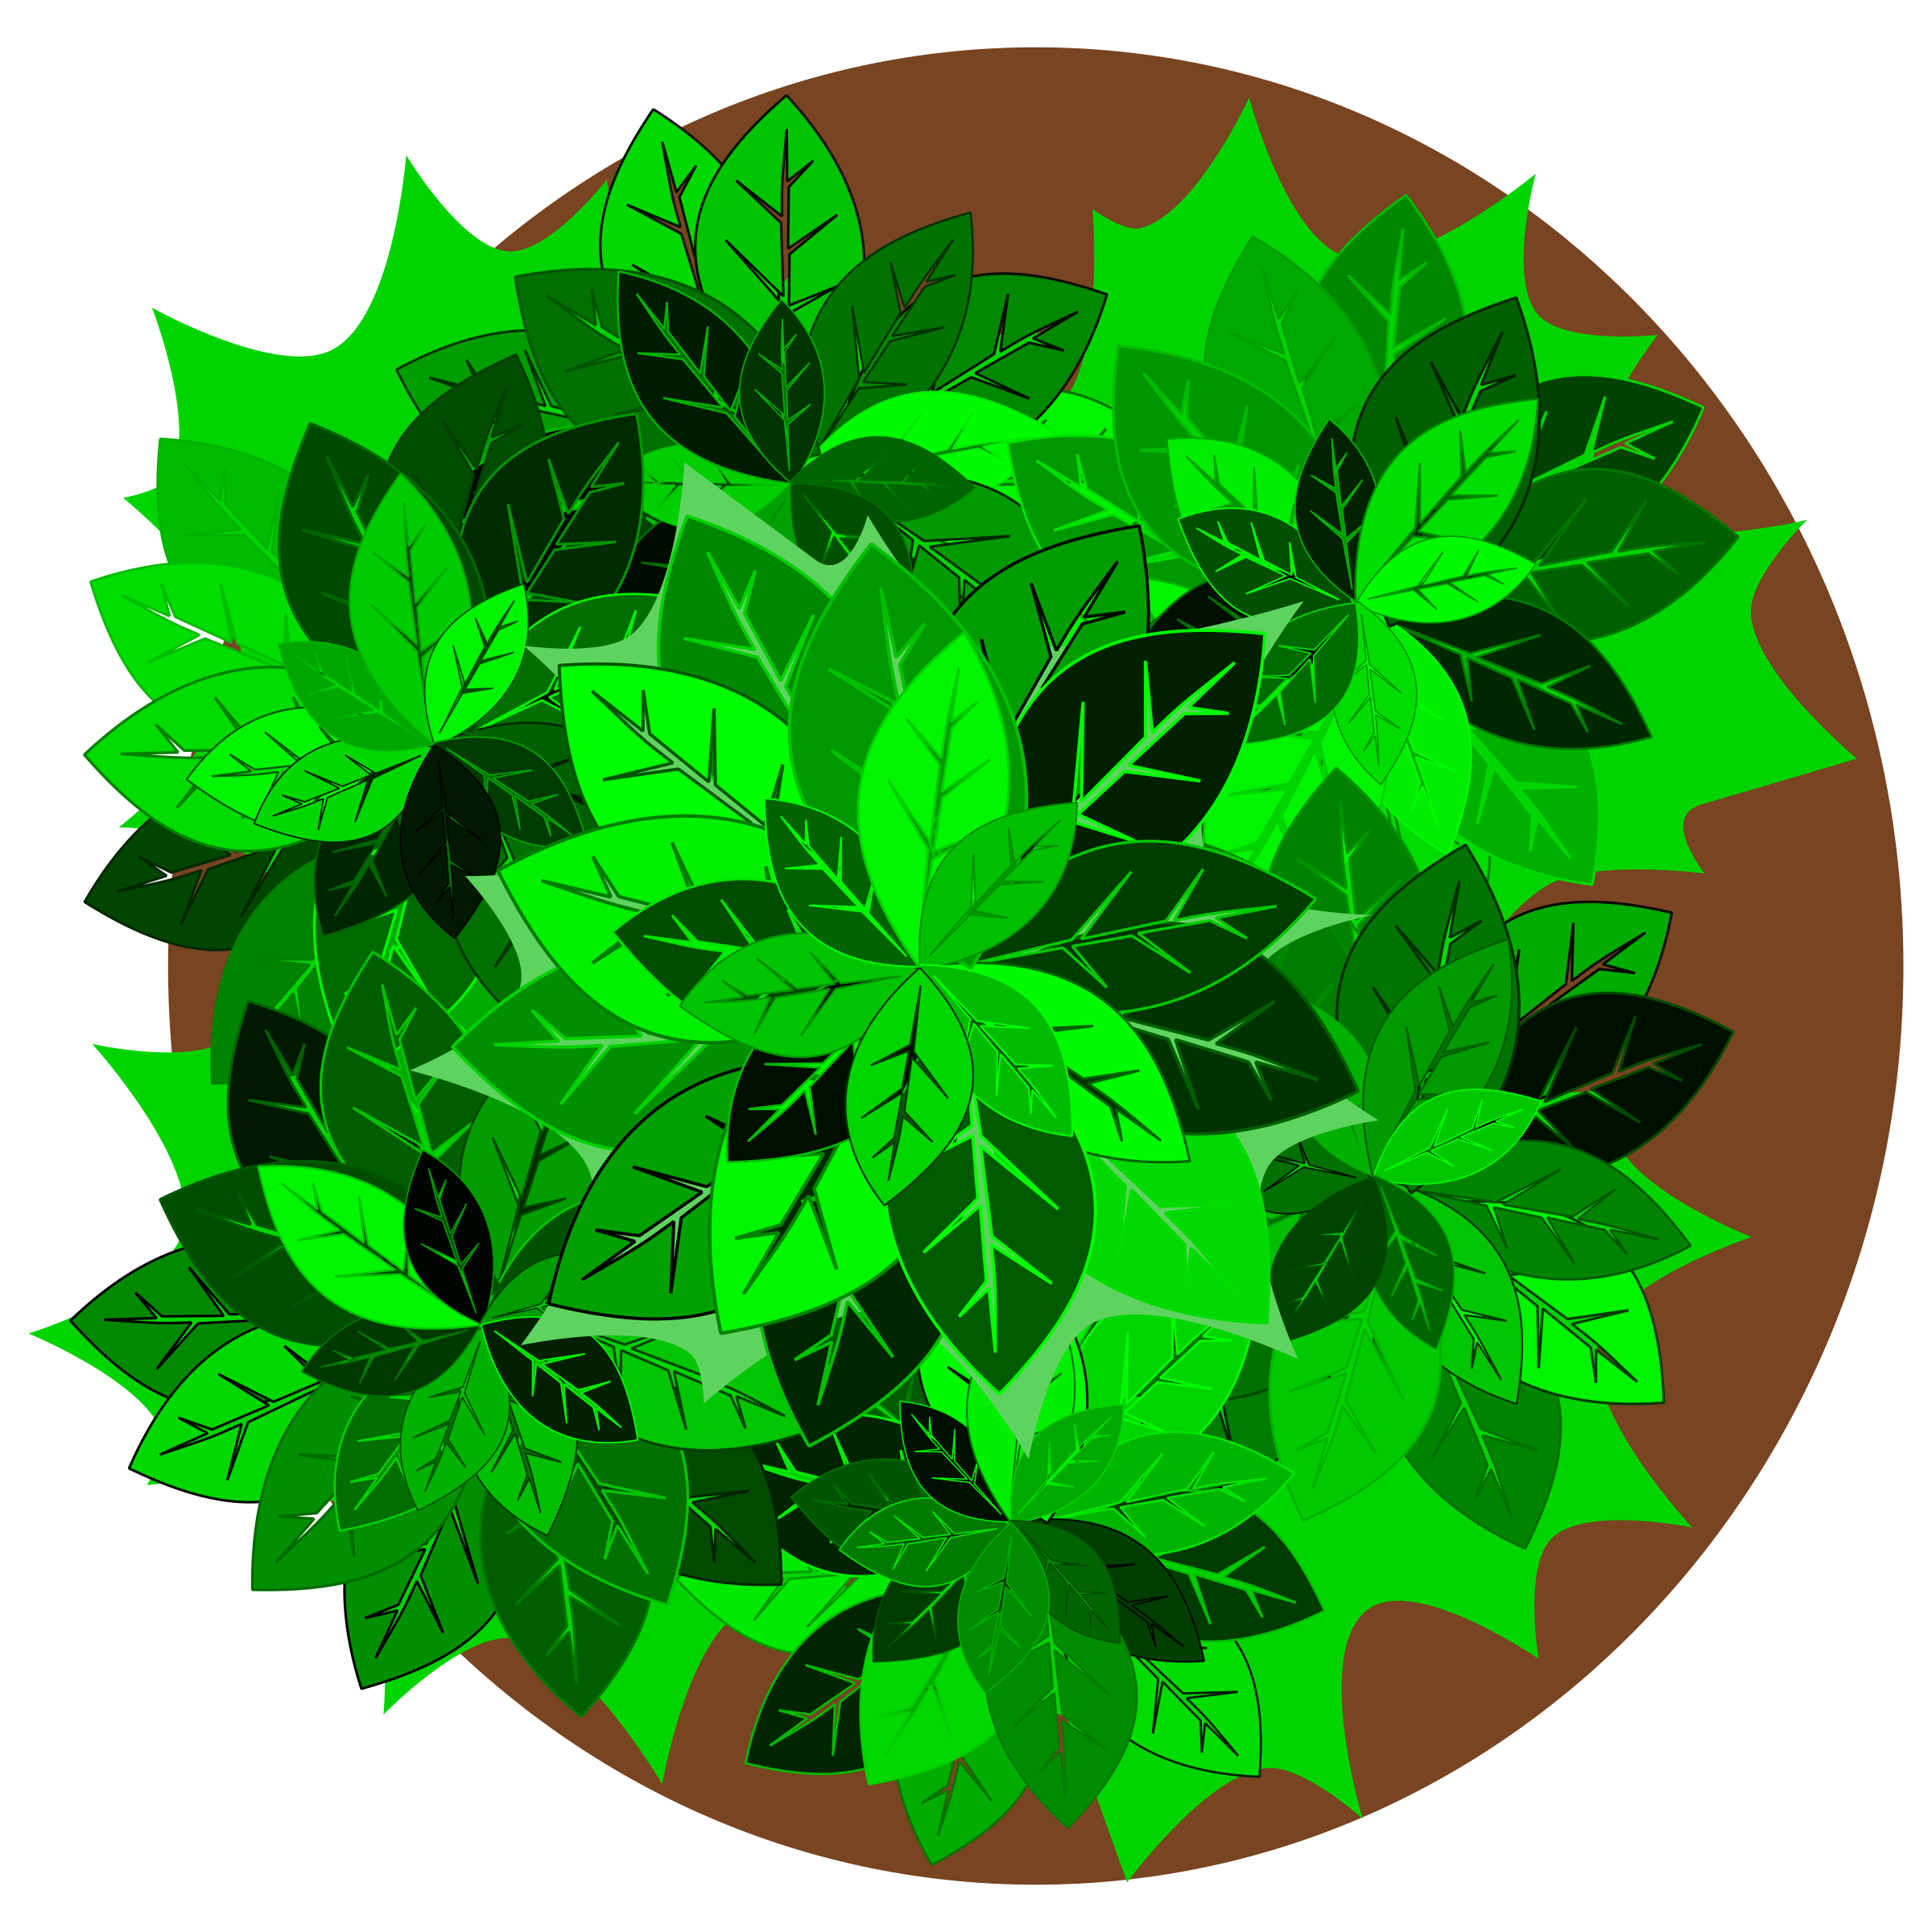 Clipart - Tree top view graphic royalty free stock